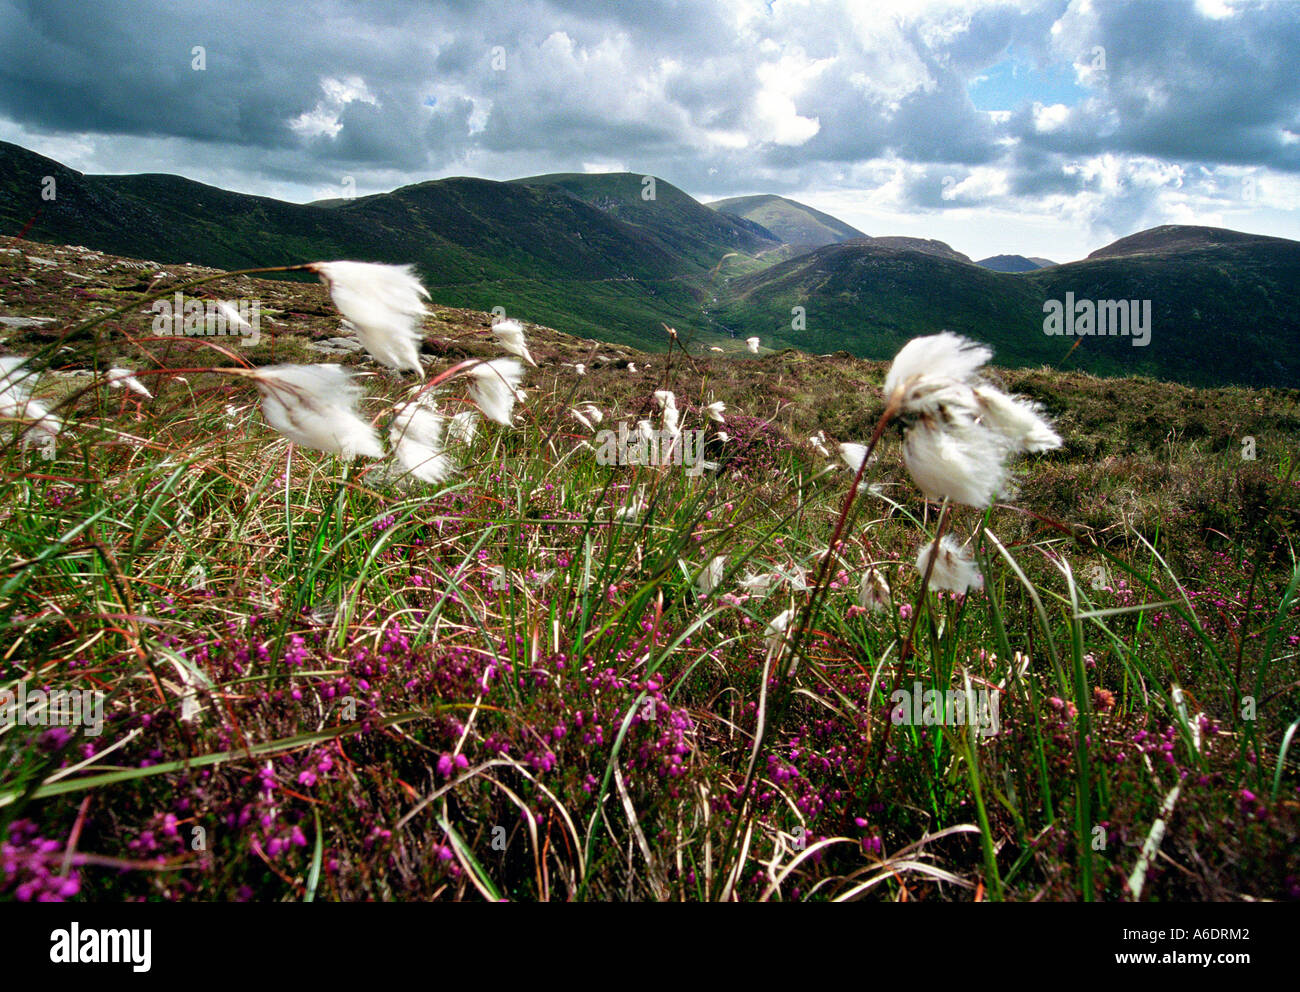 Mourne Mountains, Co. Down, Northern Ireland - Stock Image